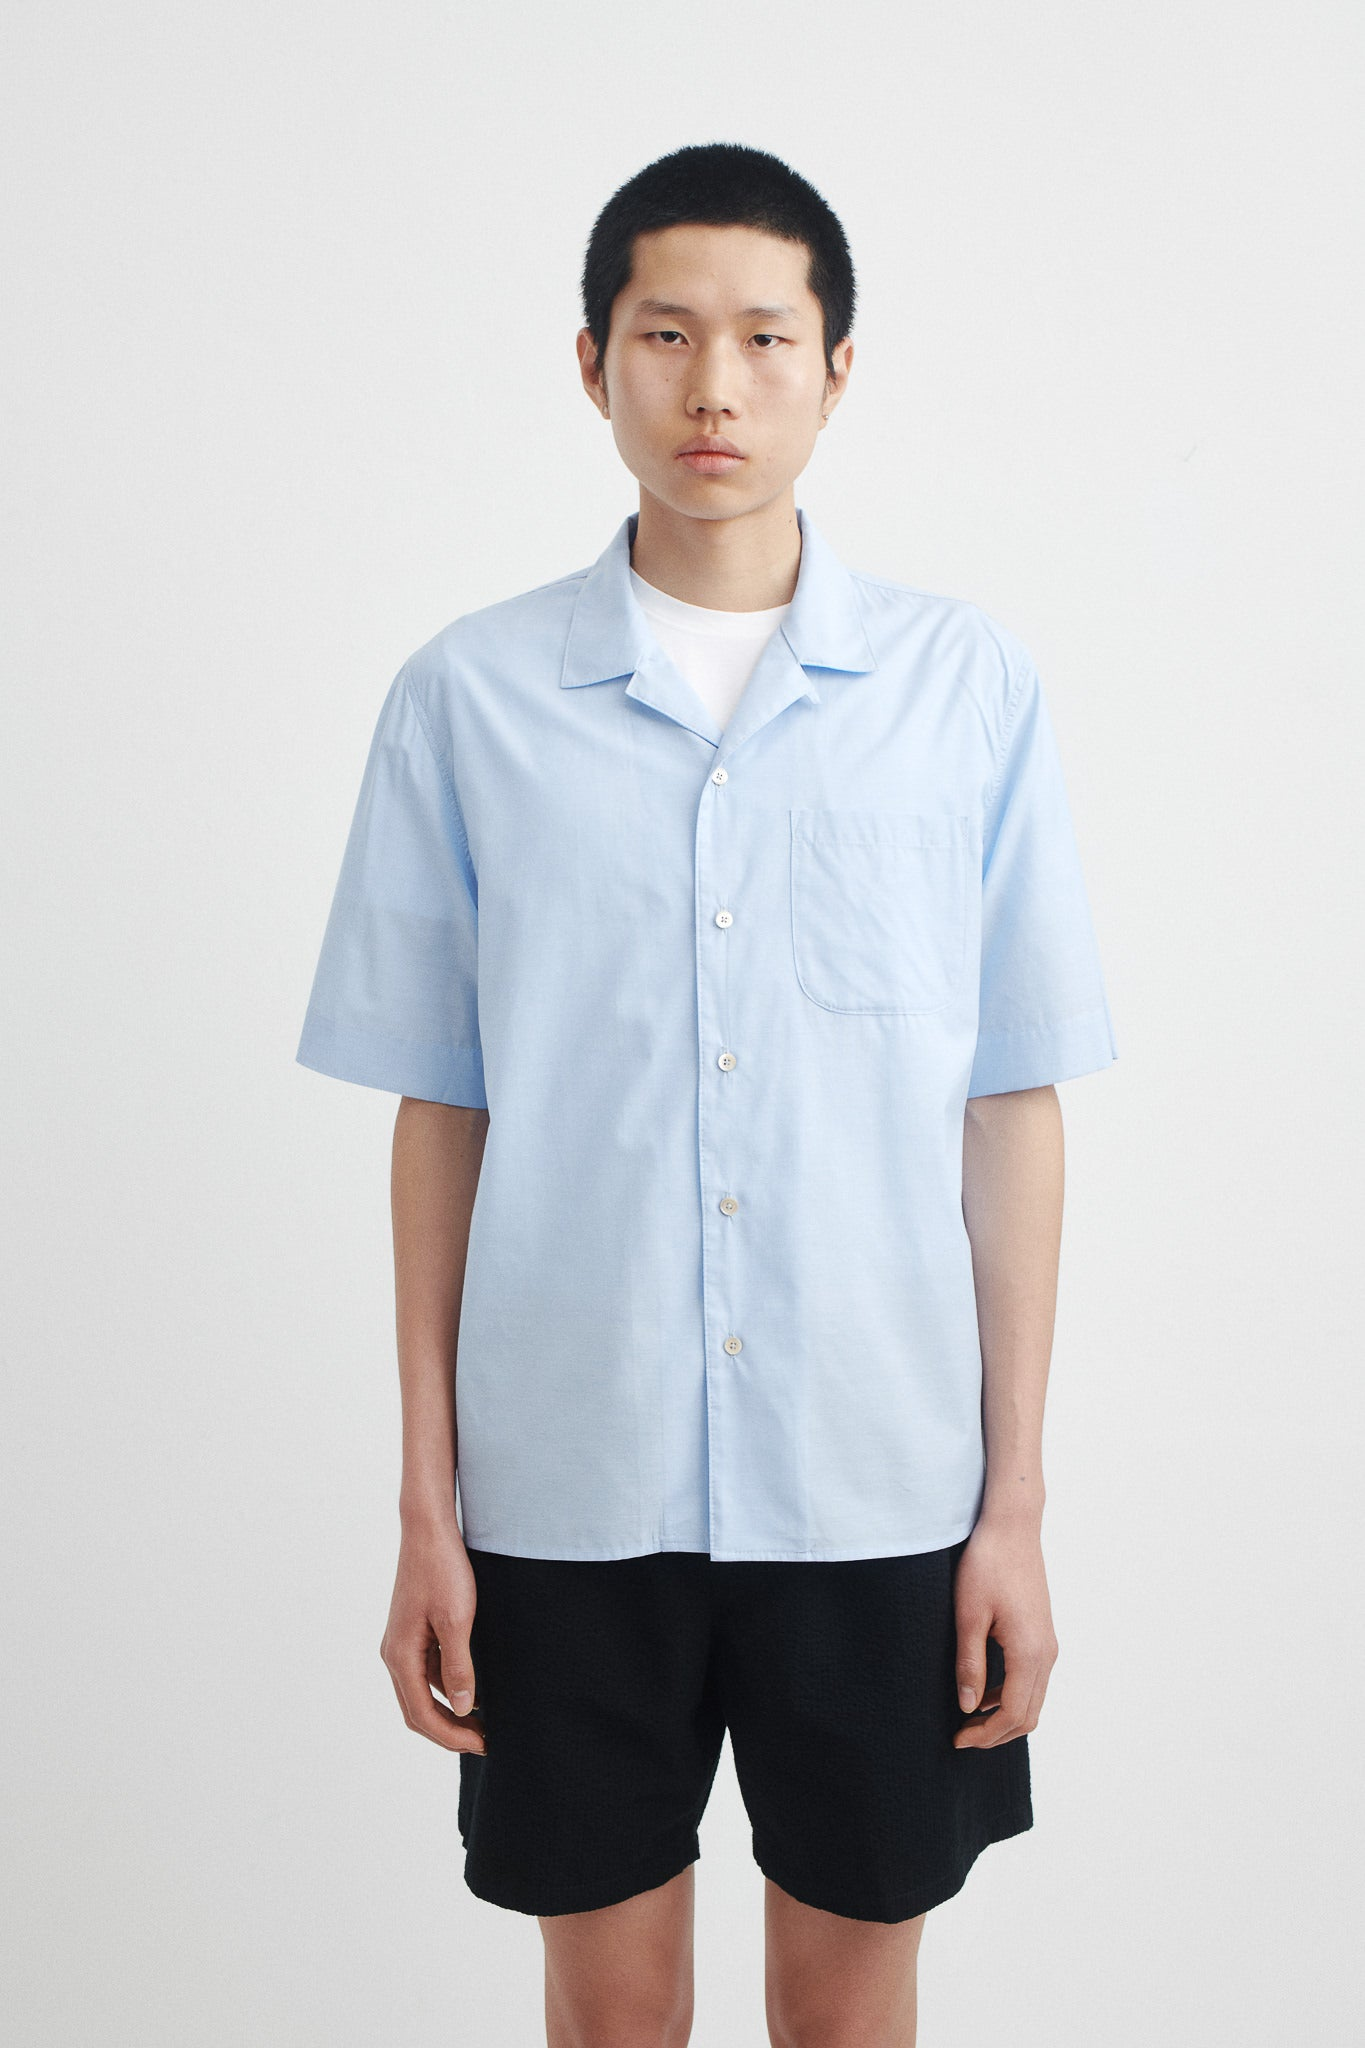 Gioia Shirt light blue